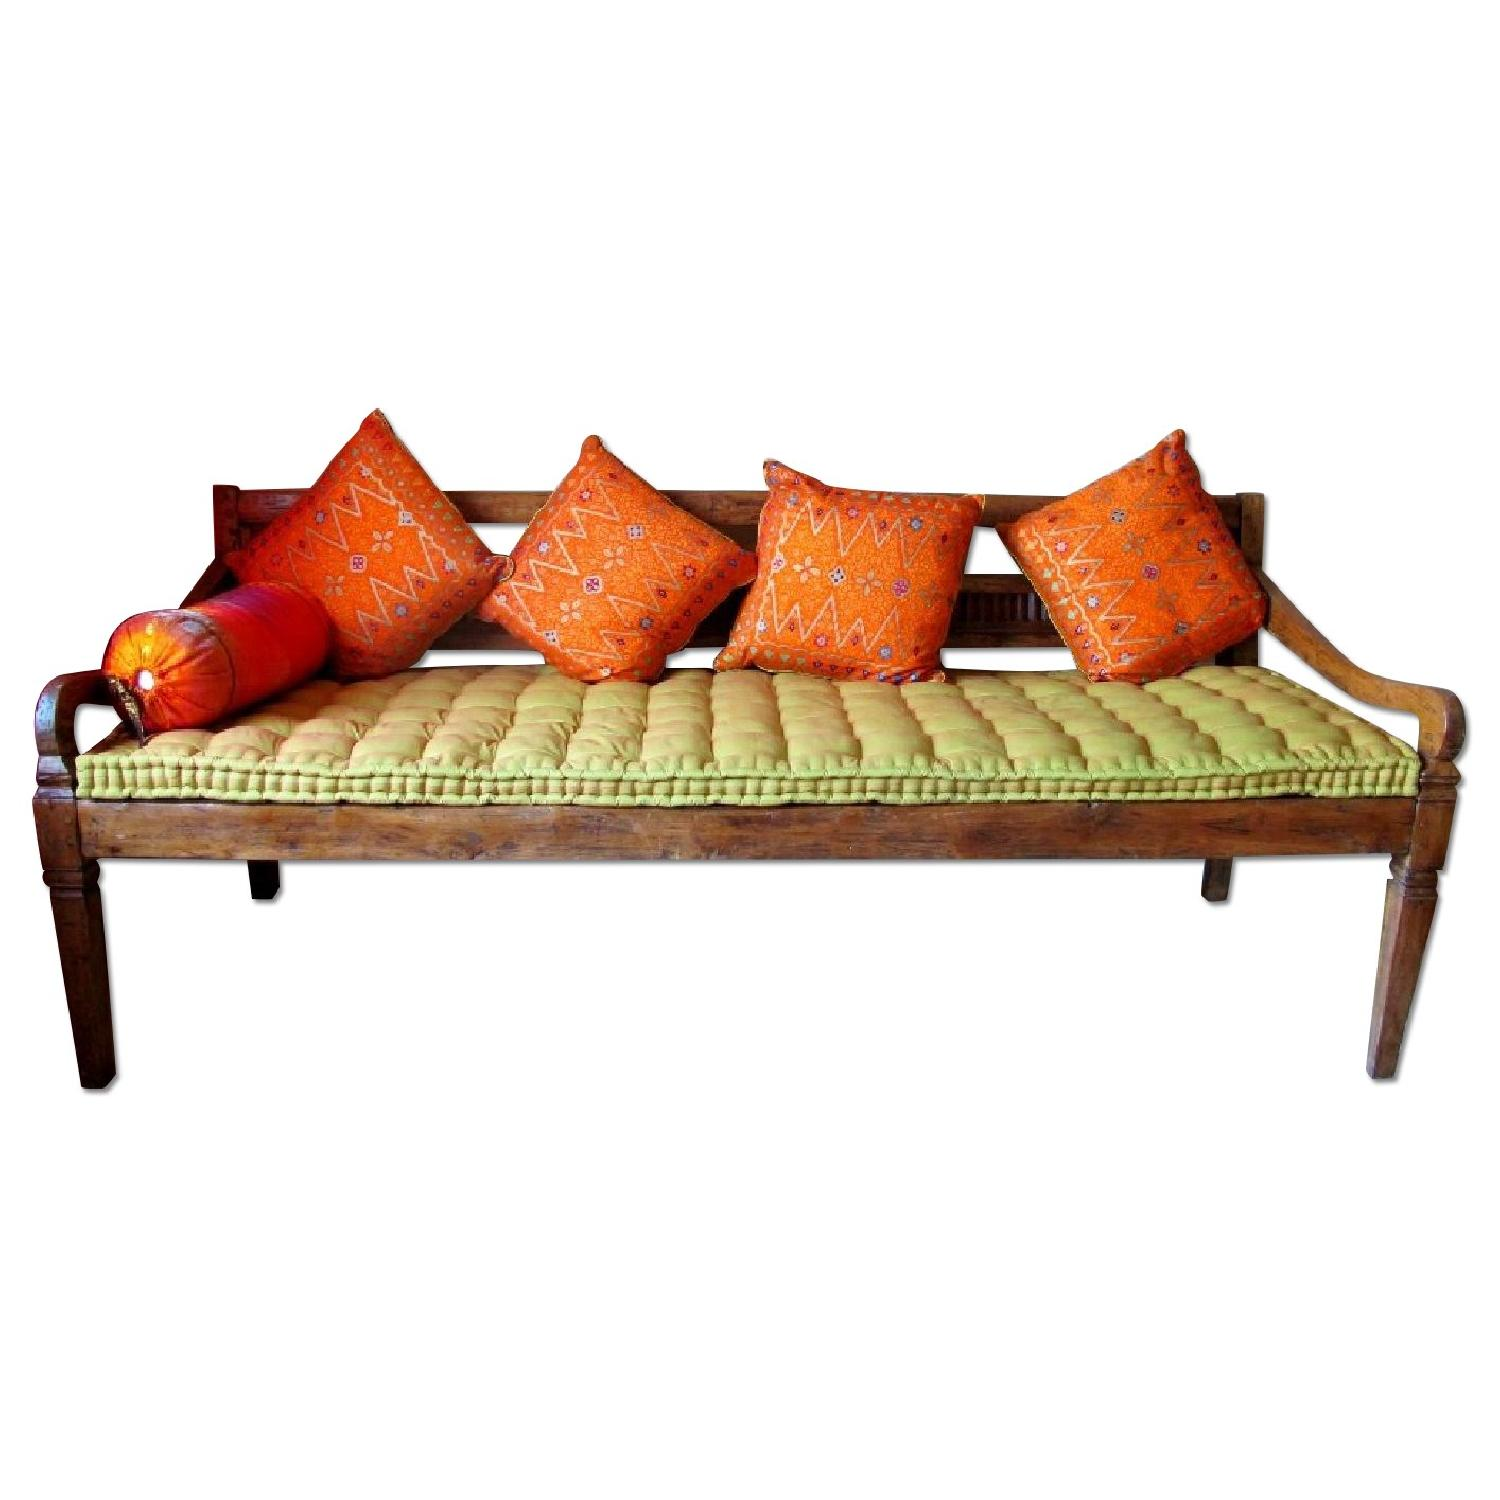 Antique Handmade Bali Dream Day Bed - image-0